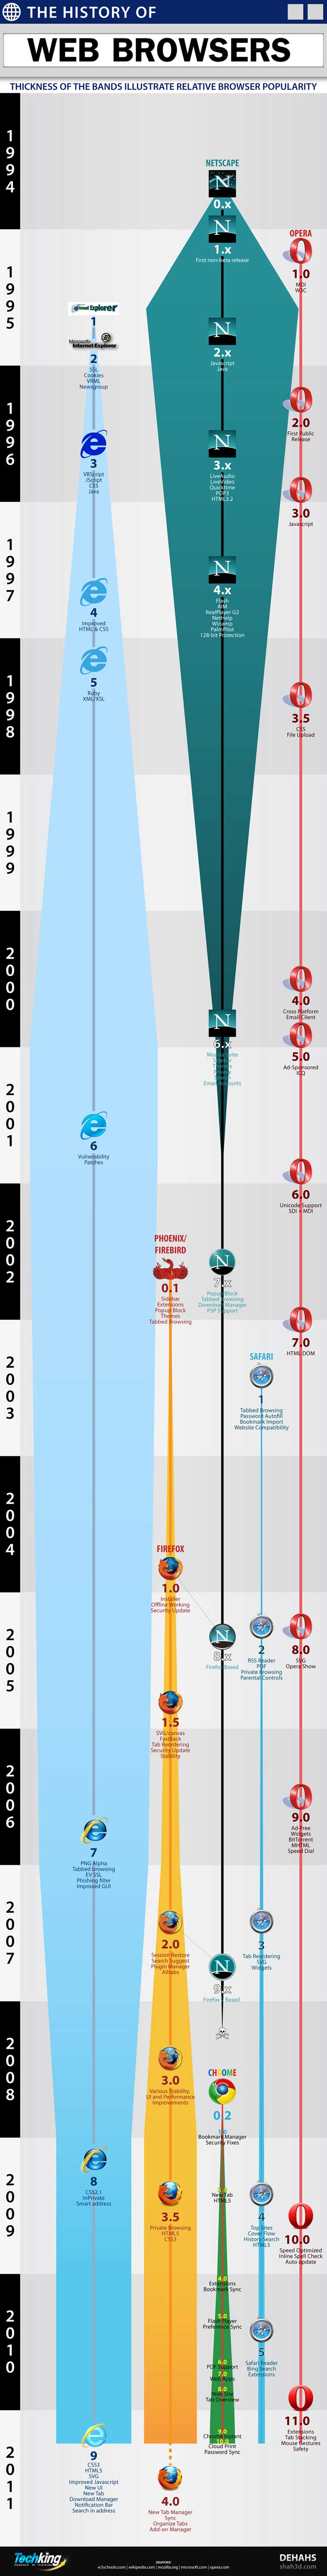 Browser Evolution Infografía